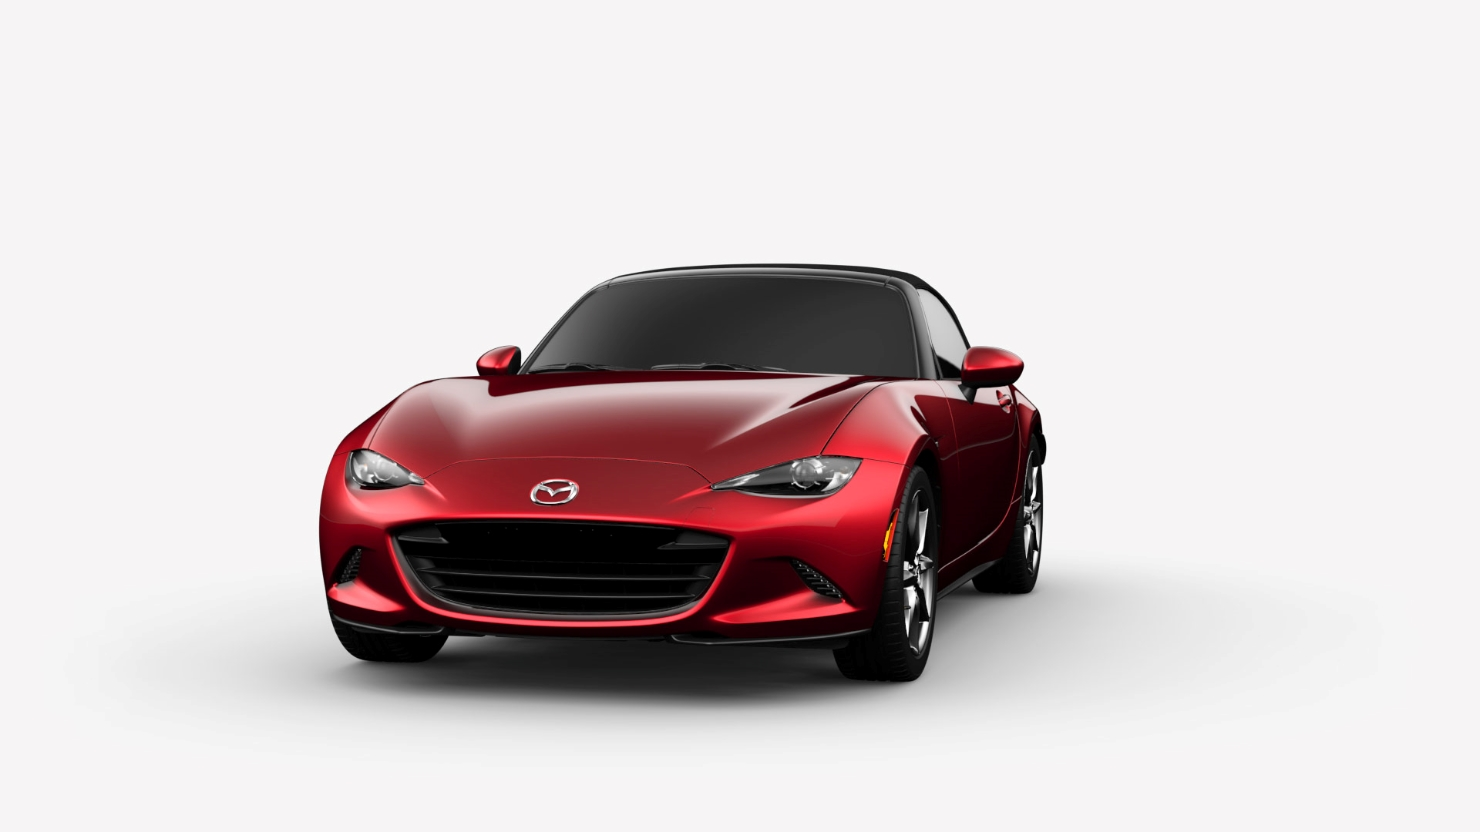 2017 mx-5 miata soul red metallic color option